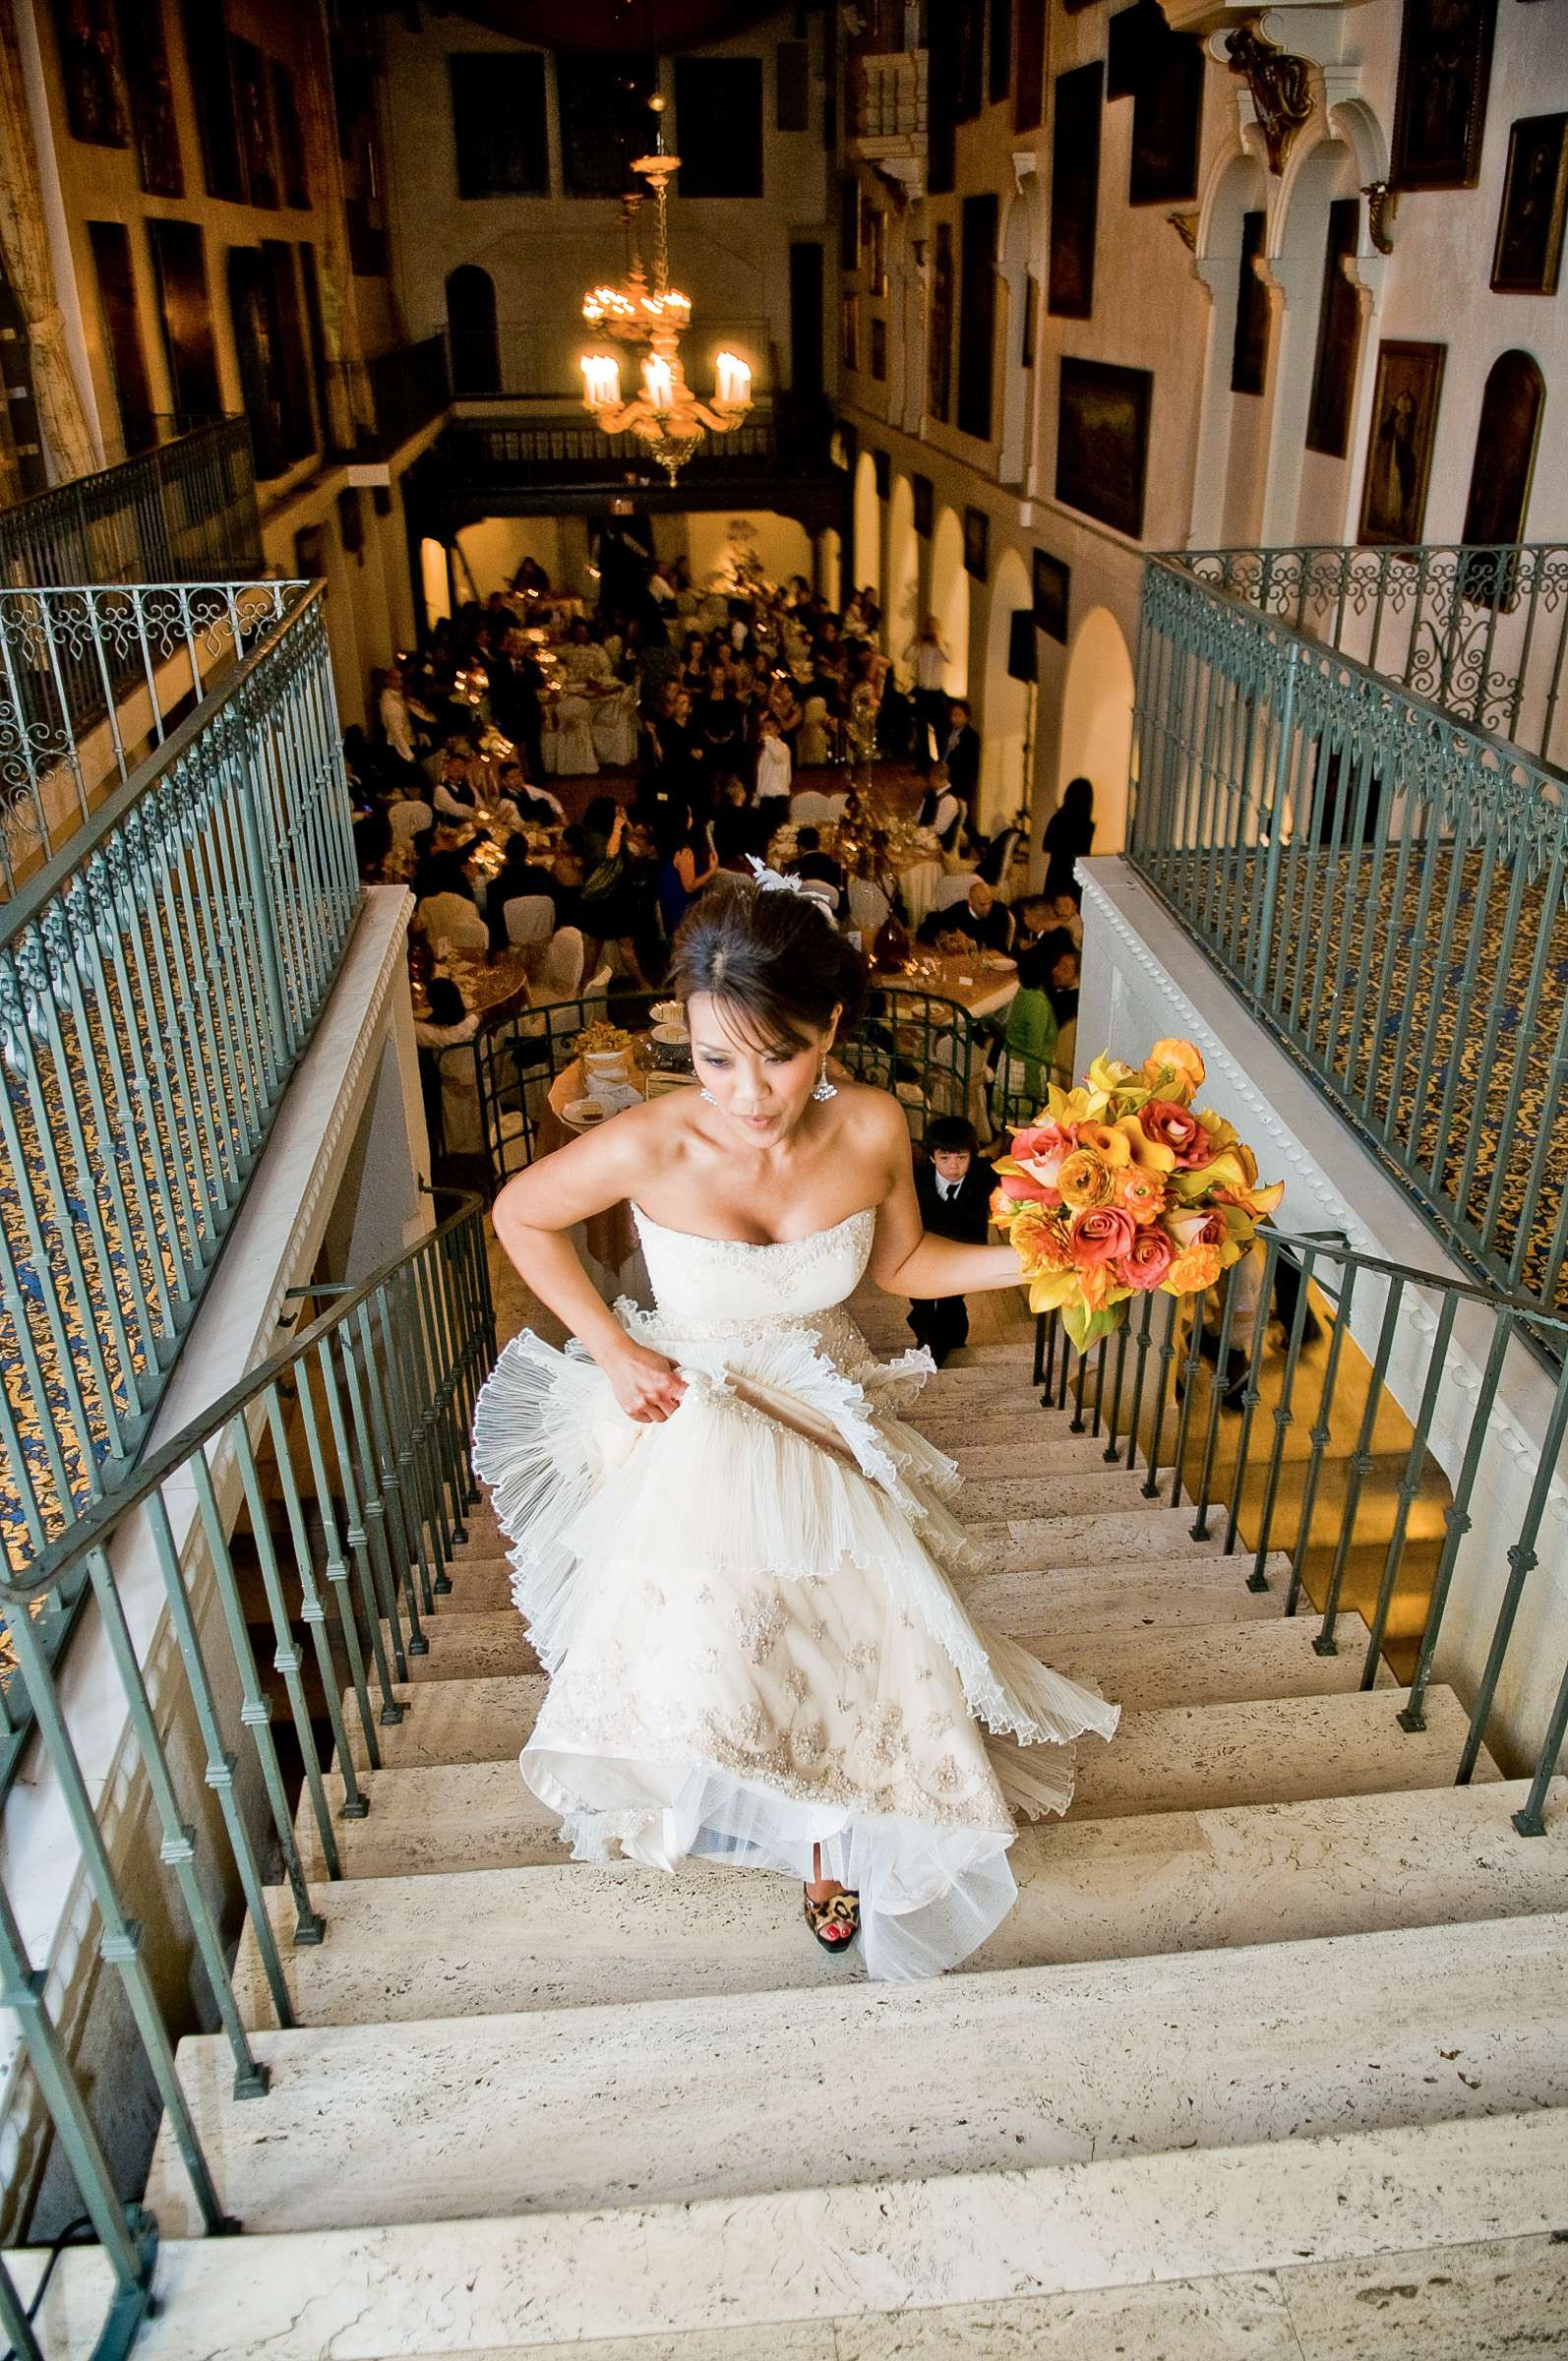 The Mission Inn-Riverside Wedding, Theresa and Francis Wedding Photo #301552 by True Photography